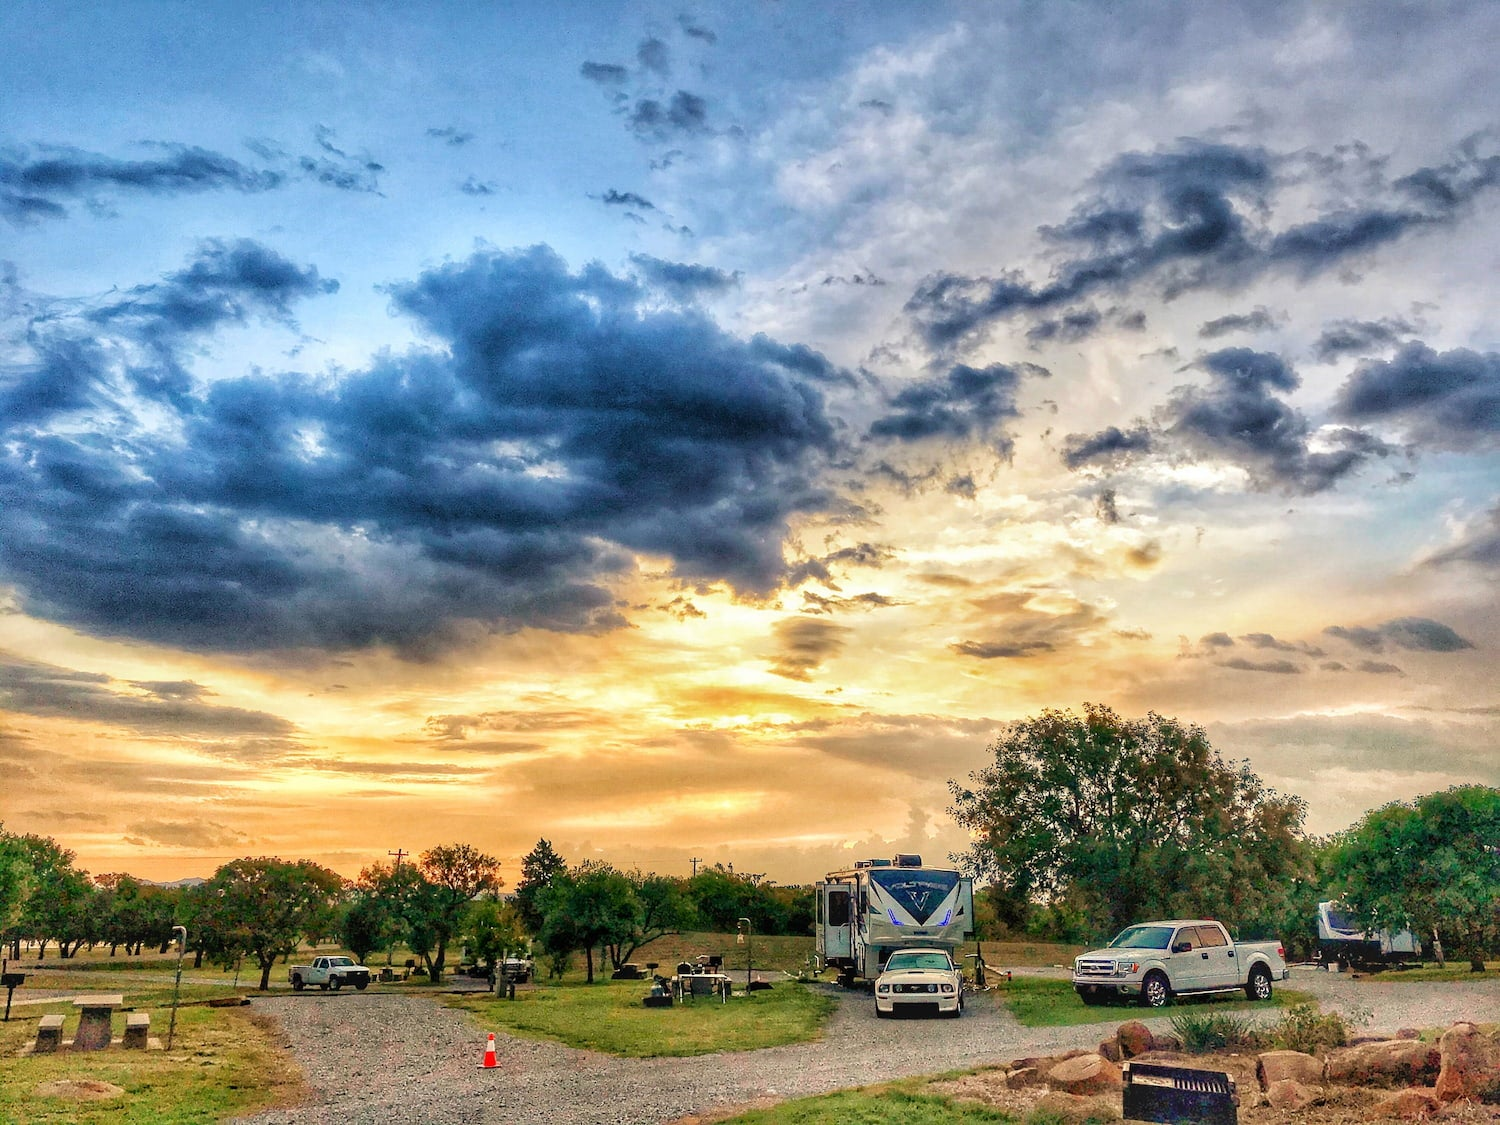 Scenic cloudy sunset over a campground with 2 trucks an RV parked.